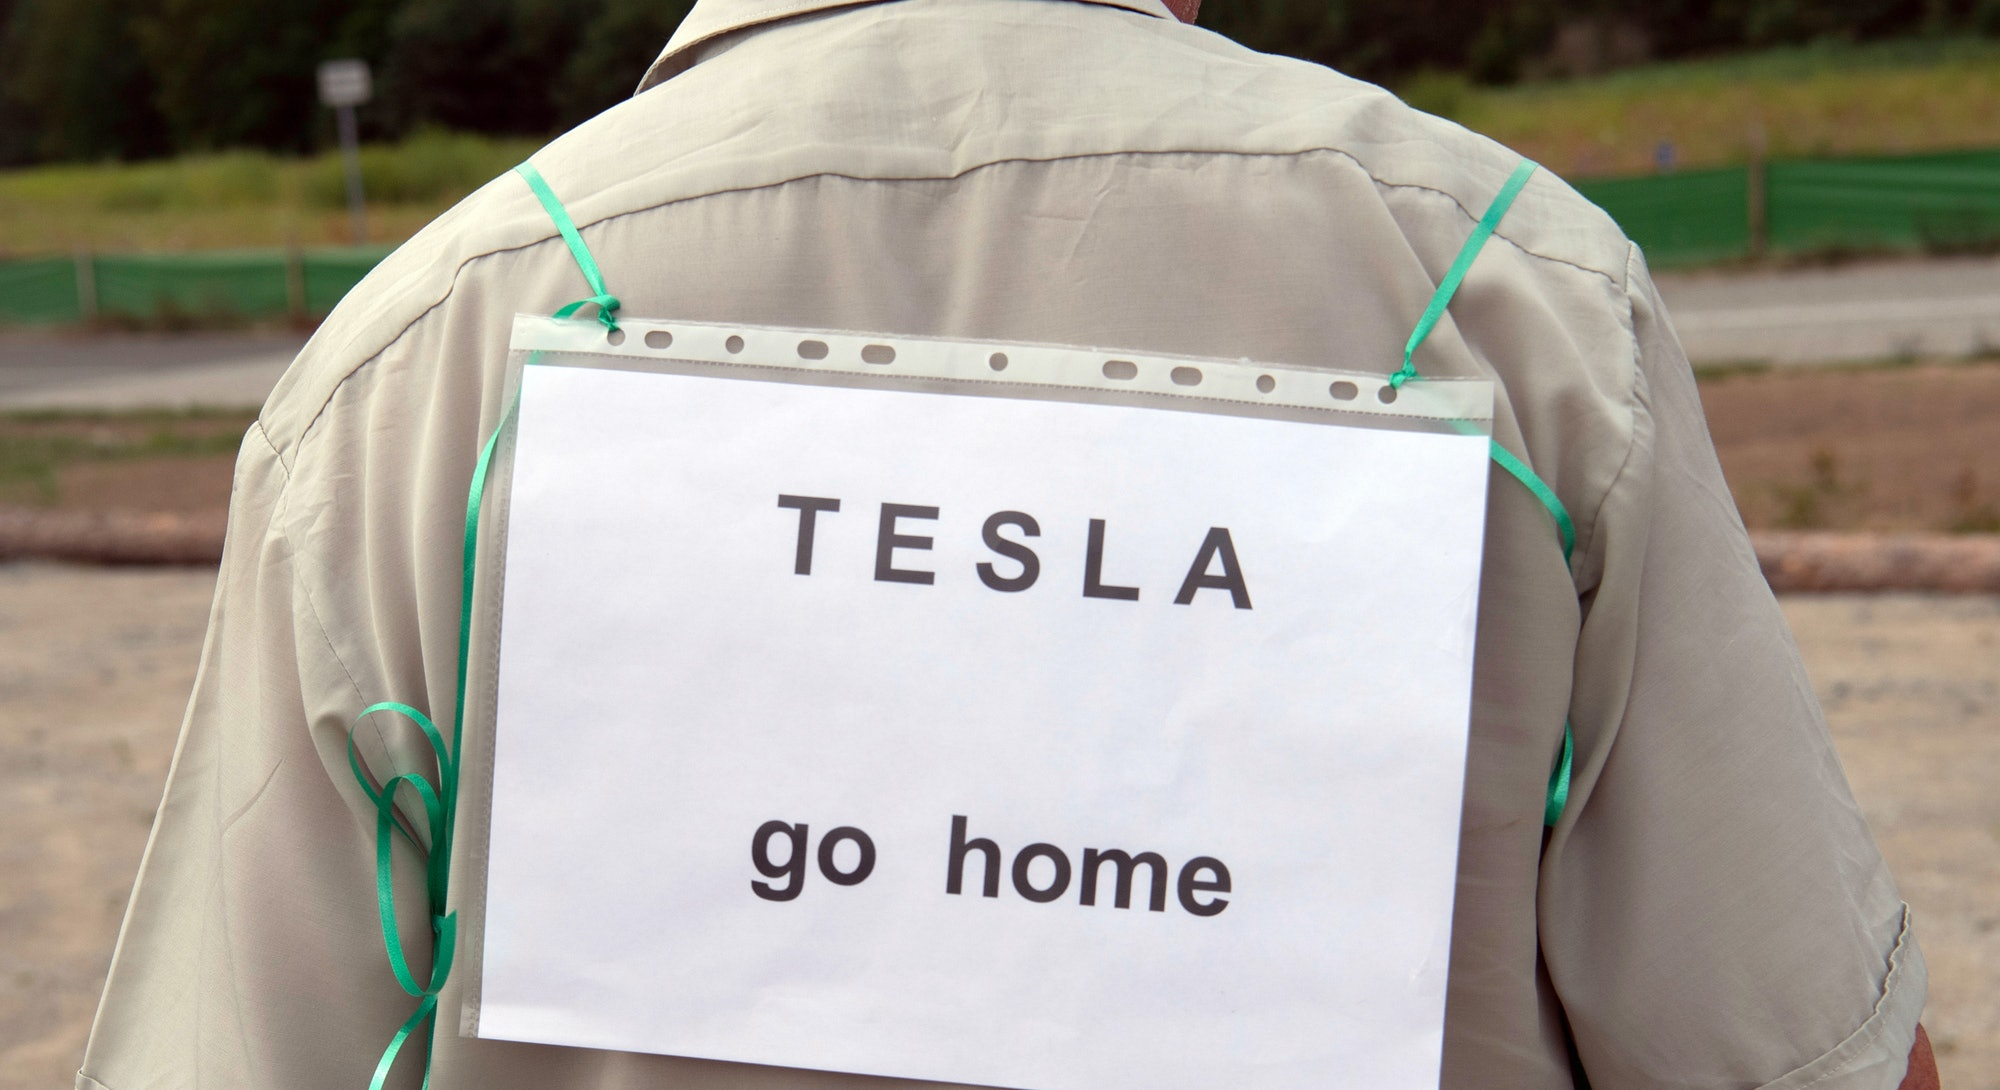 A crowd demonstrates against the settlement of Tesla in Grunheide, Germany.